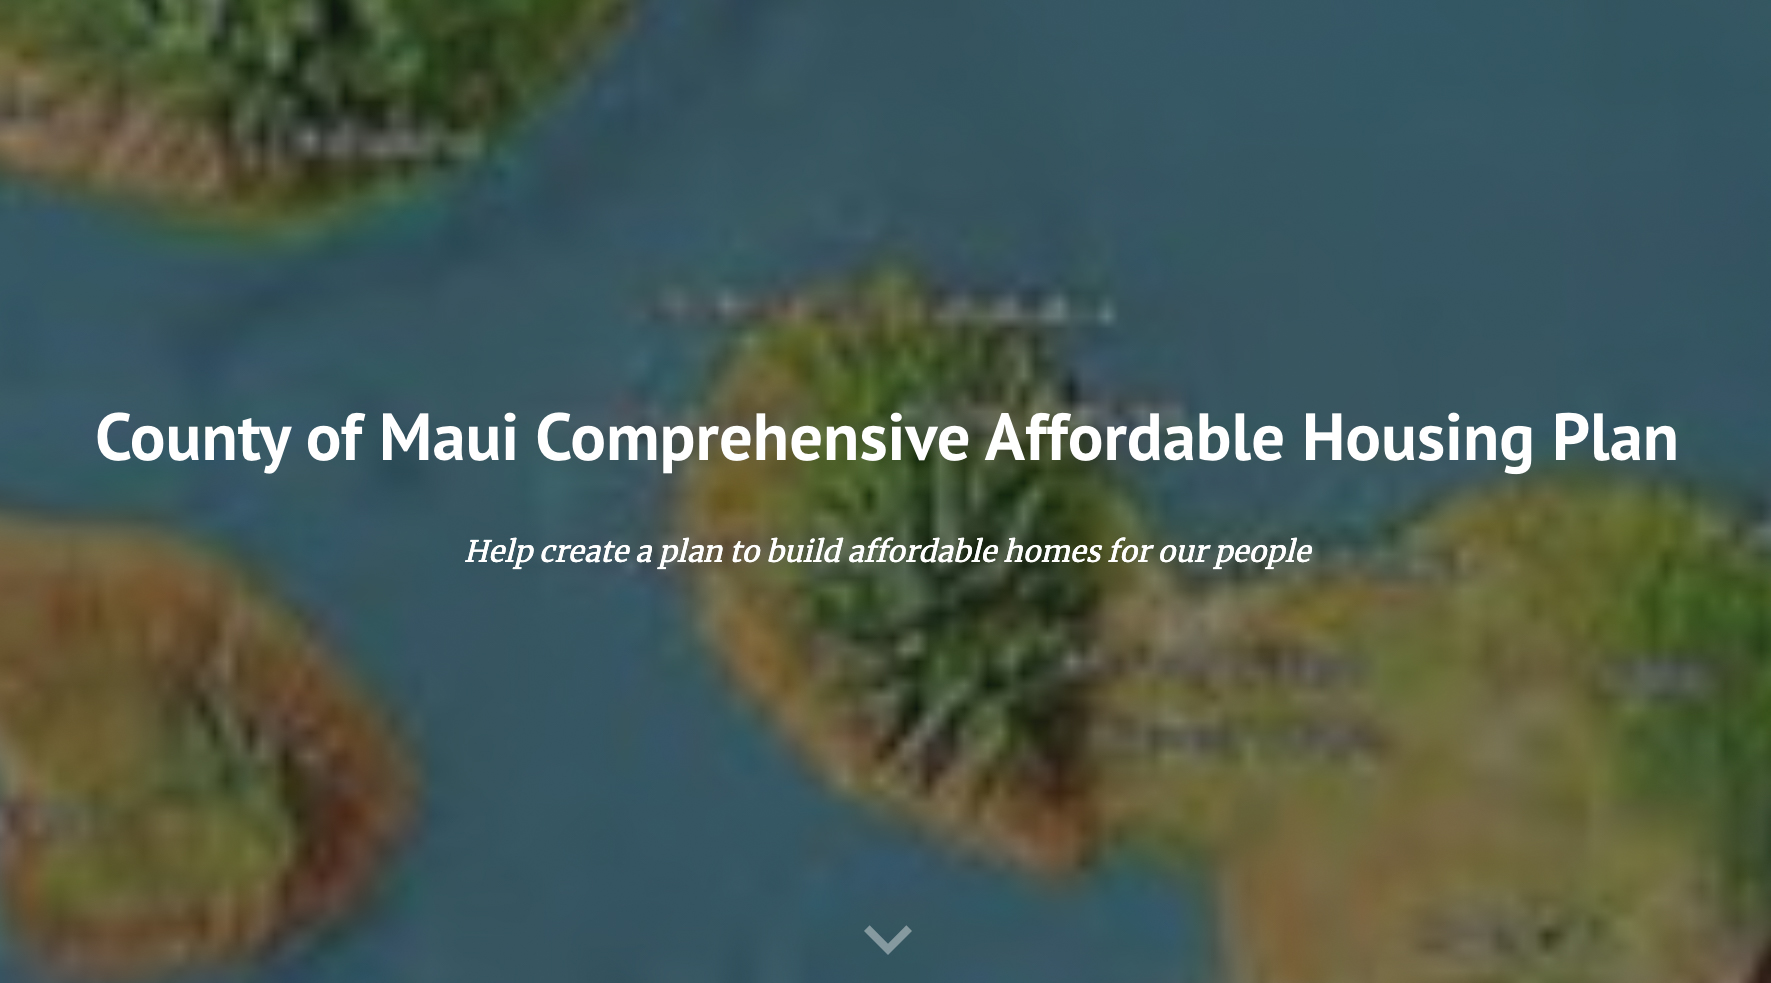 Public Feedback Sought Regarding Maui County's 5,000-Unit Affordable Housing Plan